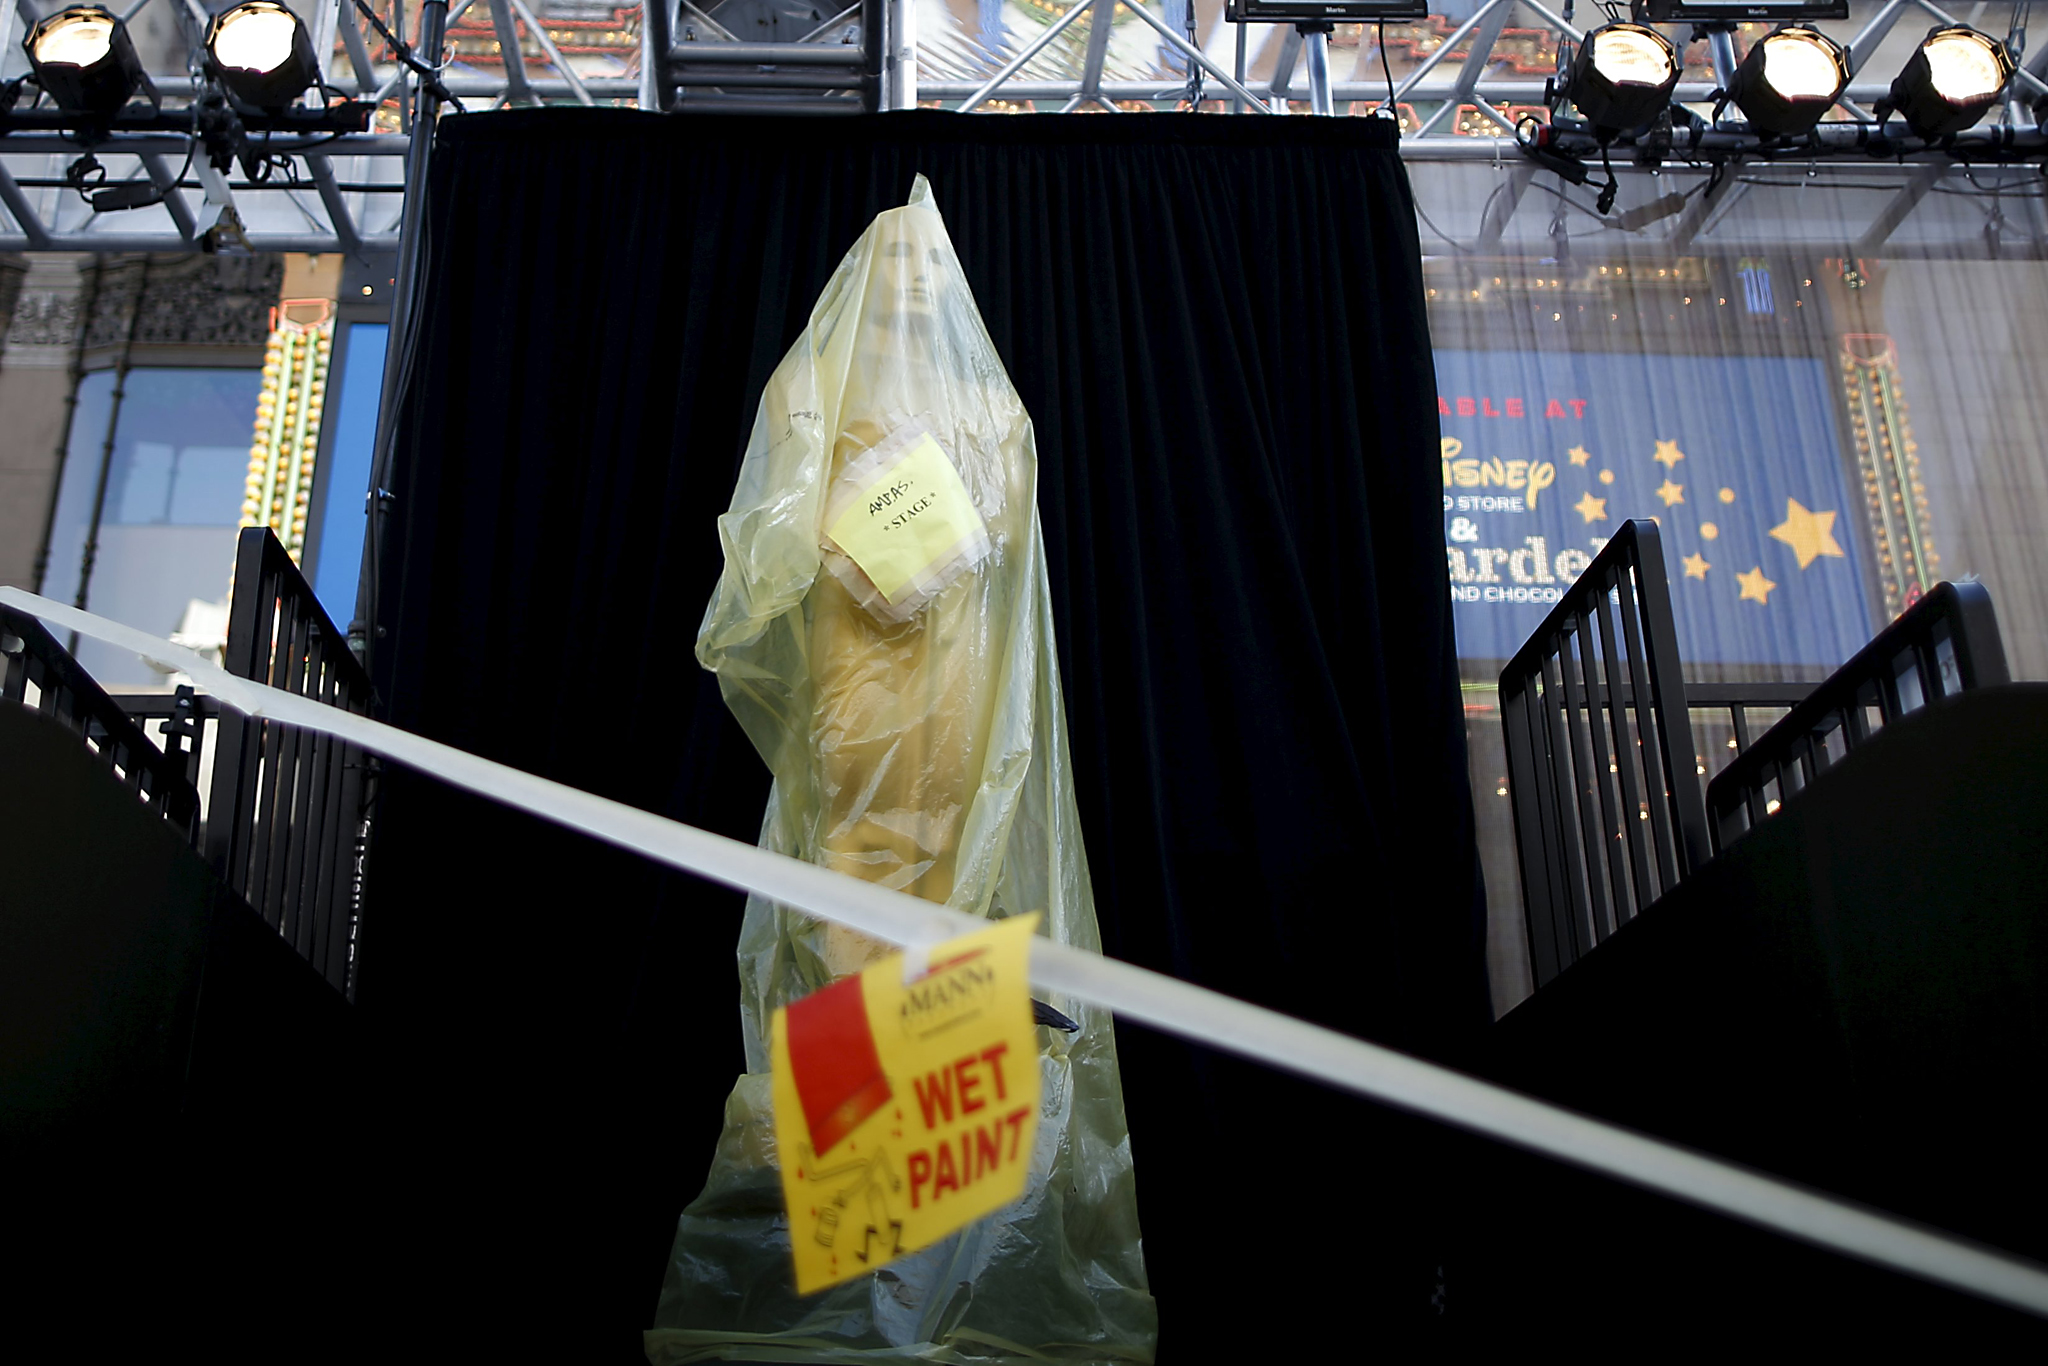 An Oscar statue stands covered in plastic at the entrance to the Dolby Theatre as preparations continue for the 88th Academy Awards in Hollywood...An Oscar statue stands covered in plastic at the entrance to the Dolby Theatre as preparations continue for the 88th Academy Awards in Hollywood, Los Angeles, California February 25, 2016. The Oscars will be presented February 28, 2016. REUTERS/Lucy Nicholson      TPX IMAGES OF THE DAY